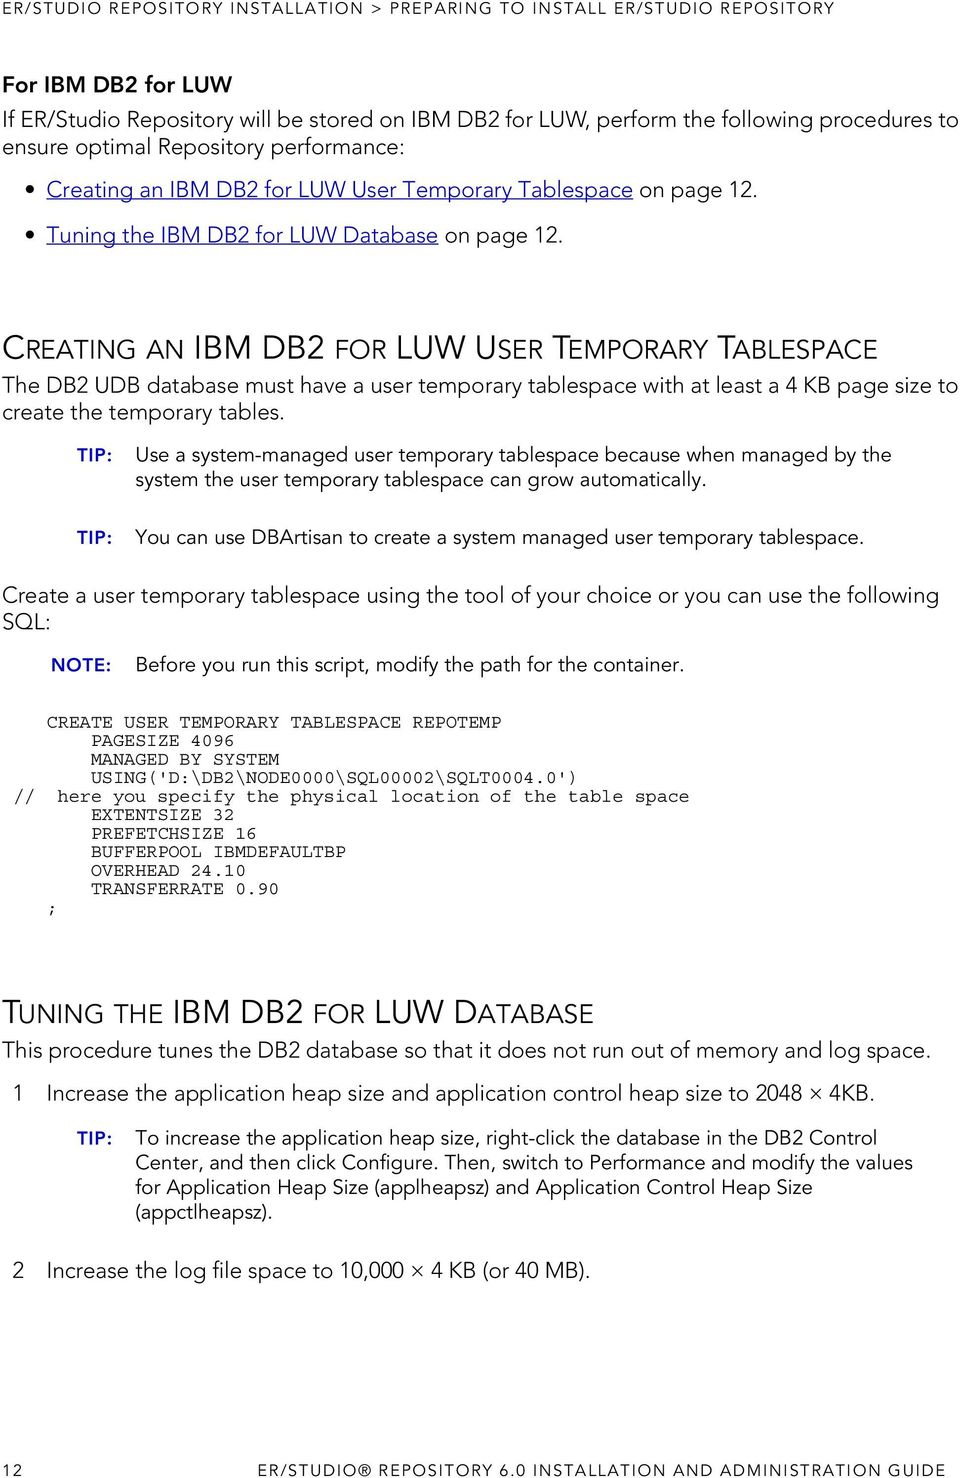 CREATING AN IBM DB2 FOR LUW USER TEMPORARY TABLESPACE The DB2 UDB database must have a user temporary tablespace with at least a 4 KB page size to create the temporary tables.